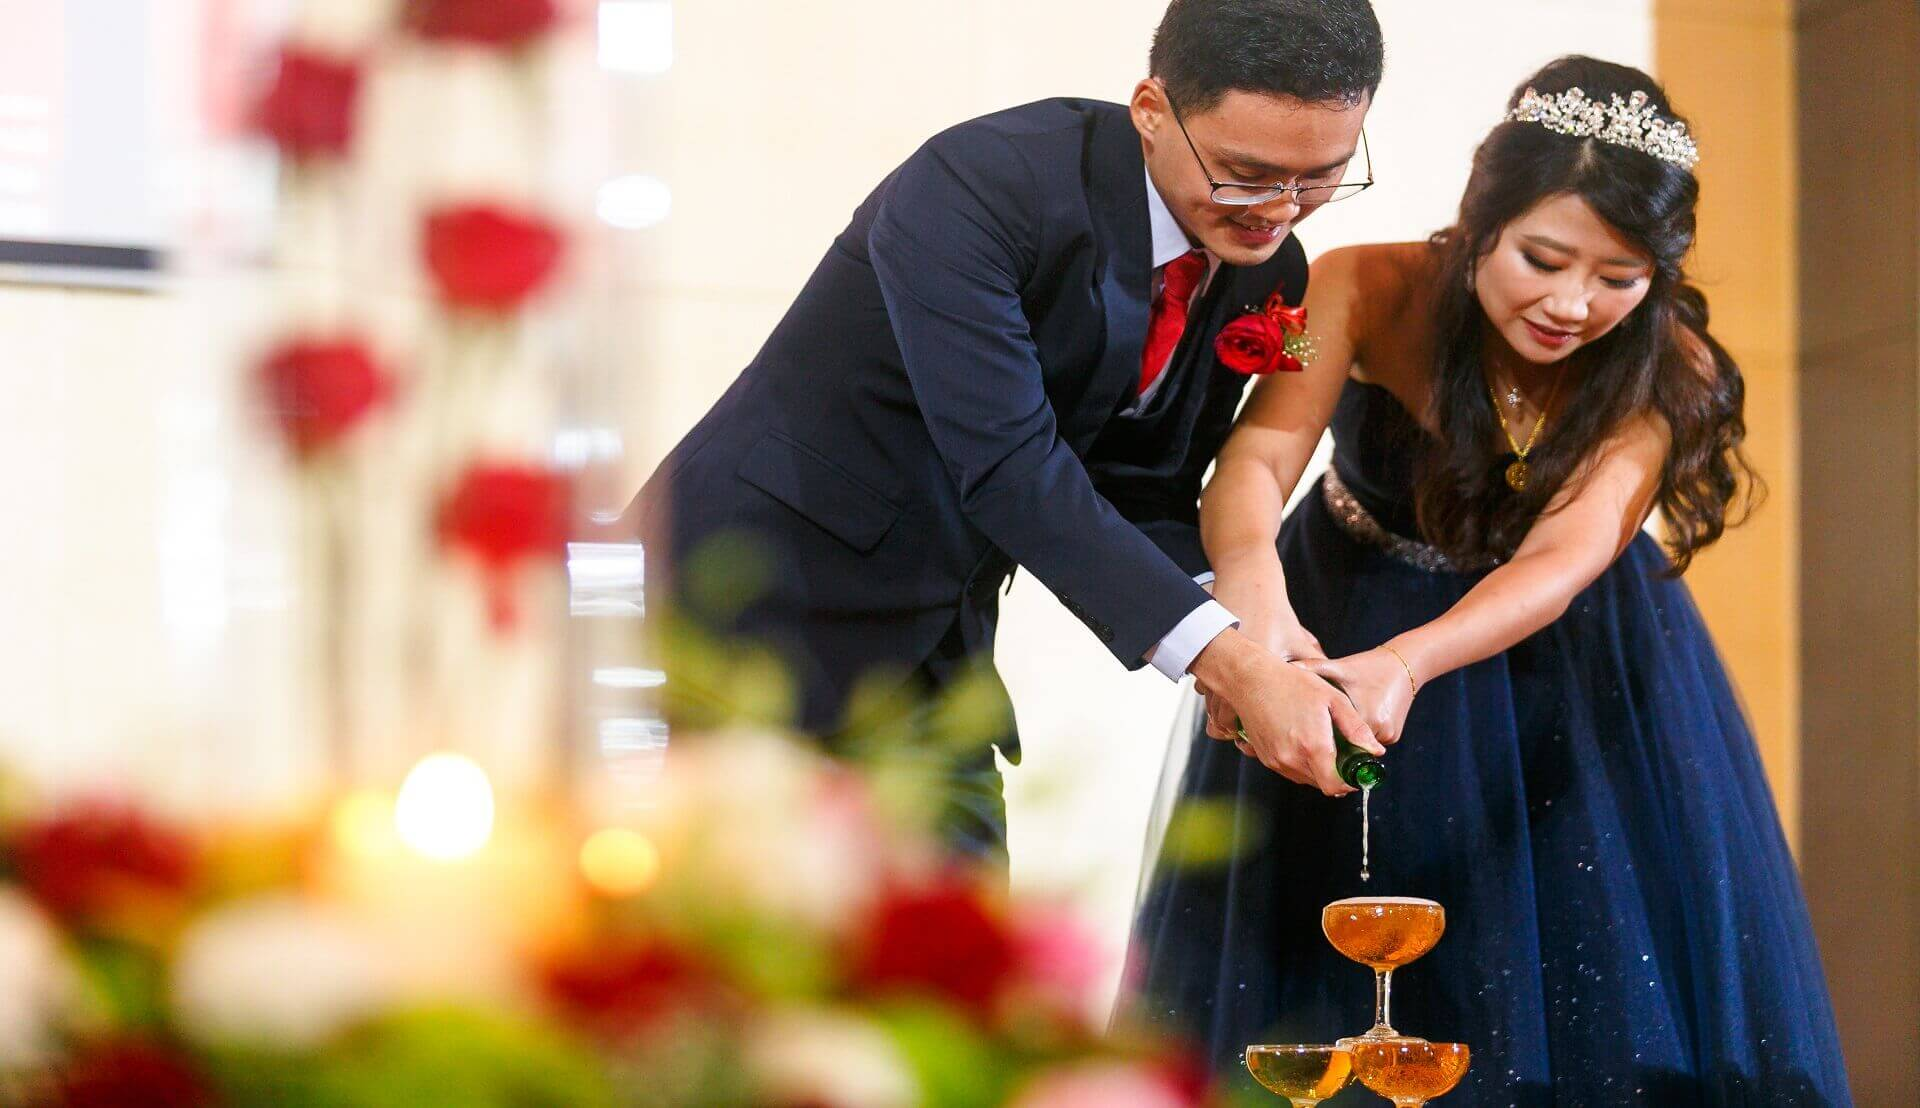 Sugar & Spice Events -Newlywed couple champagne pouring in glasses